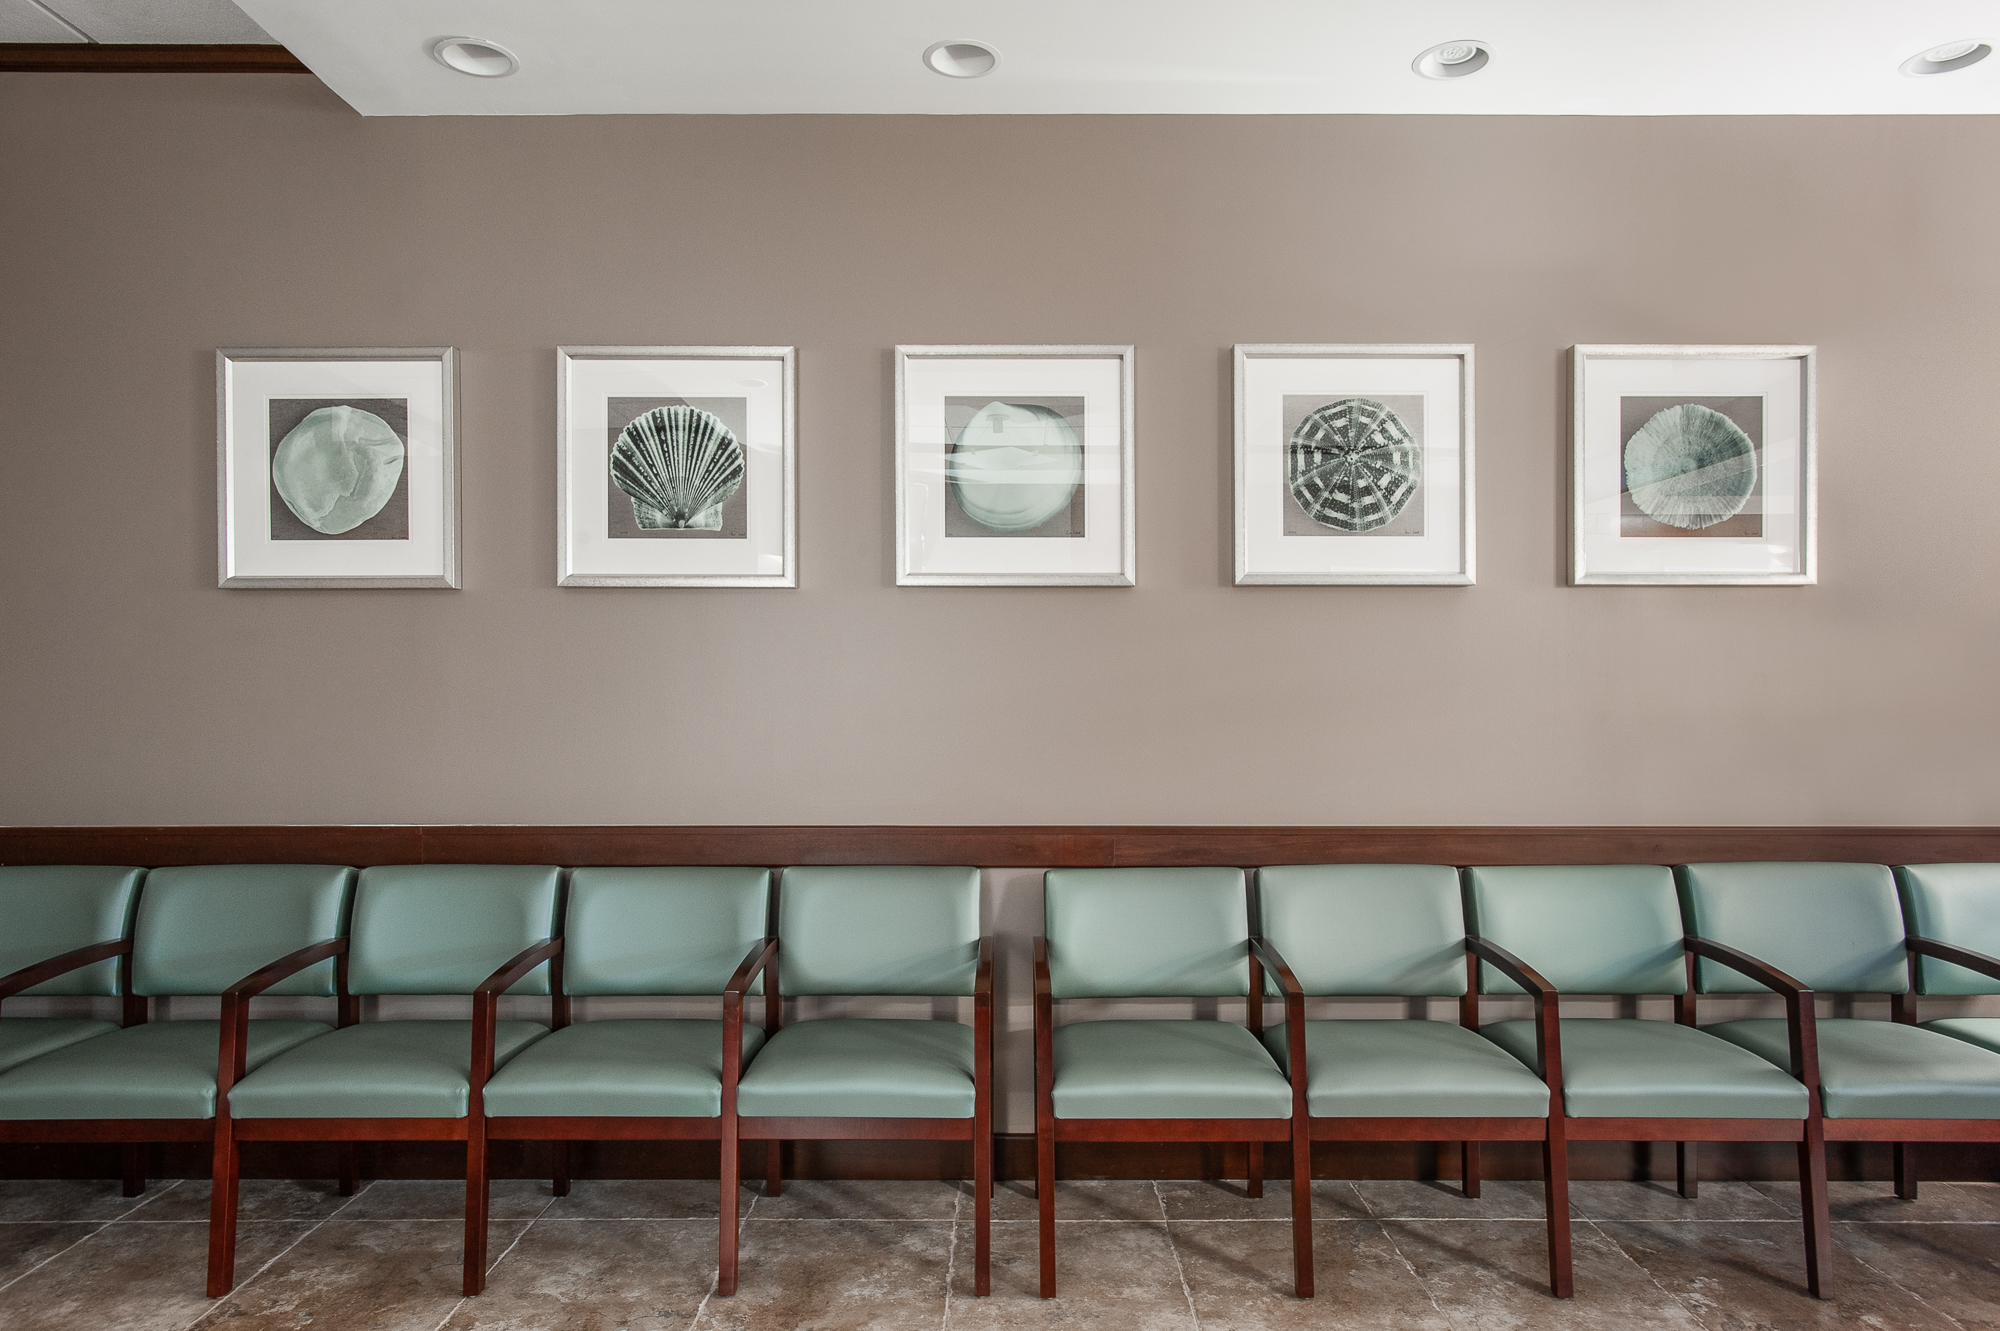 Micamy Design Studio_Interior Design_Clay Eye_Mandarin_Opthamology_Commercial_Office_Medical_Eye Care_Renovation_Crossville_Interiors_Artwork_Coastal_Crossville_Eykon11.jpg